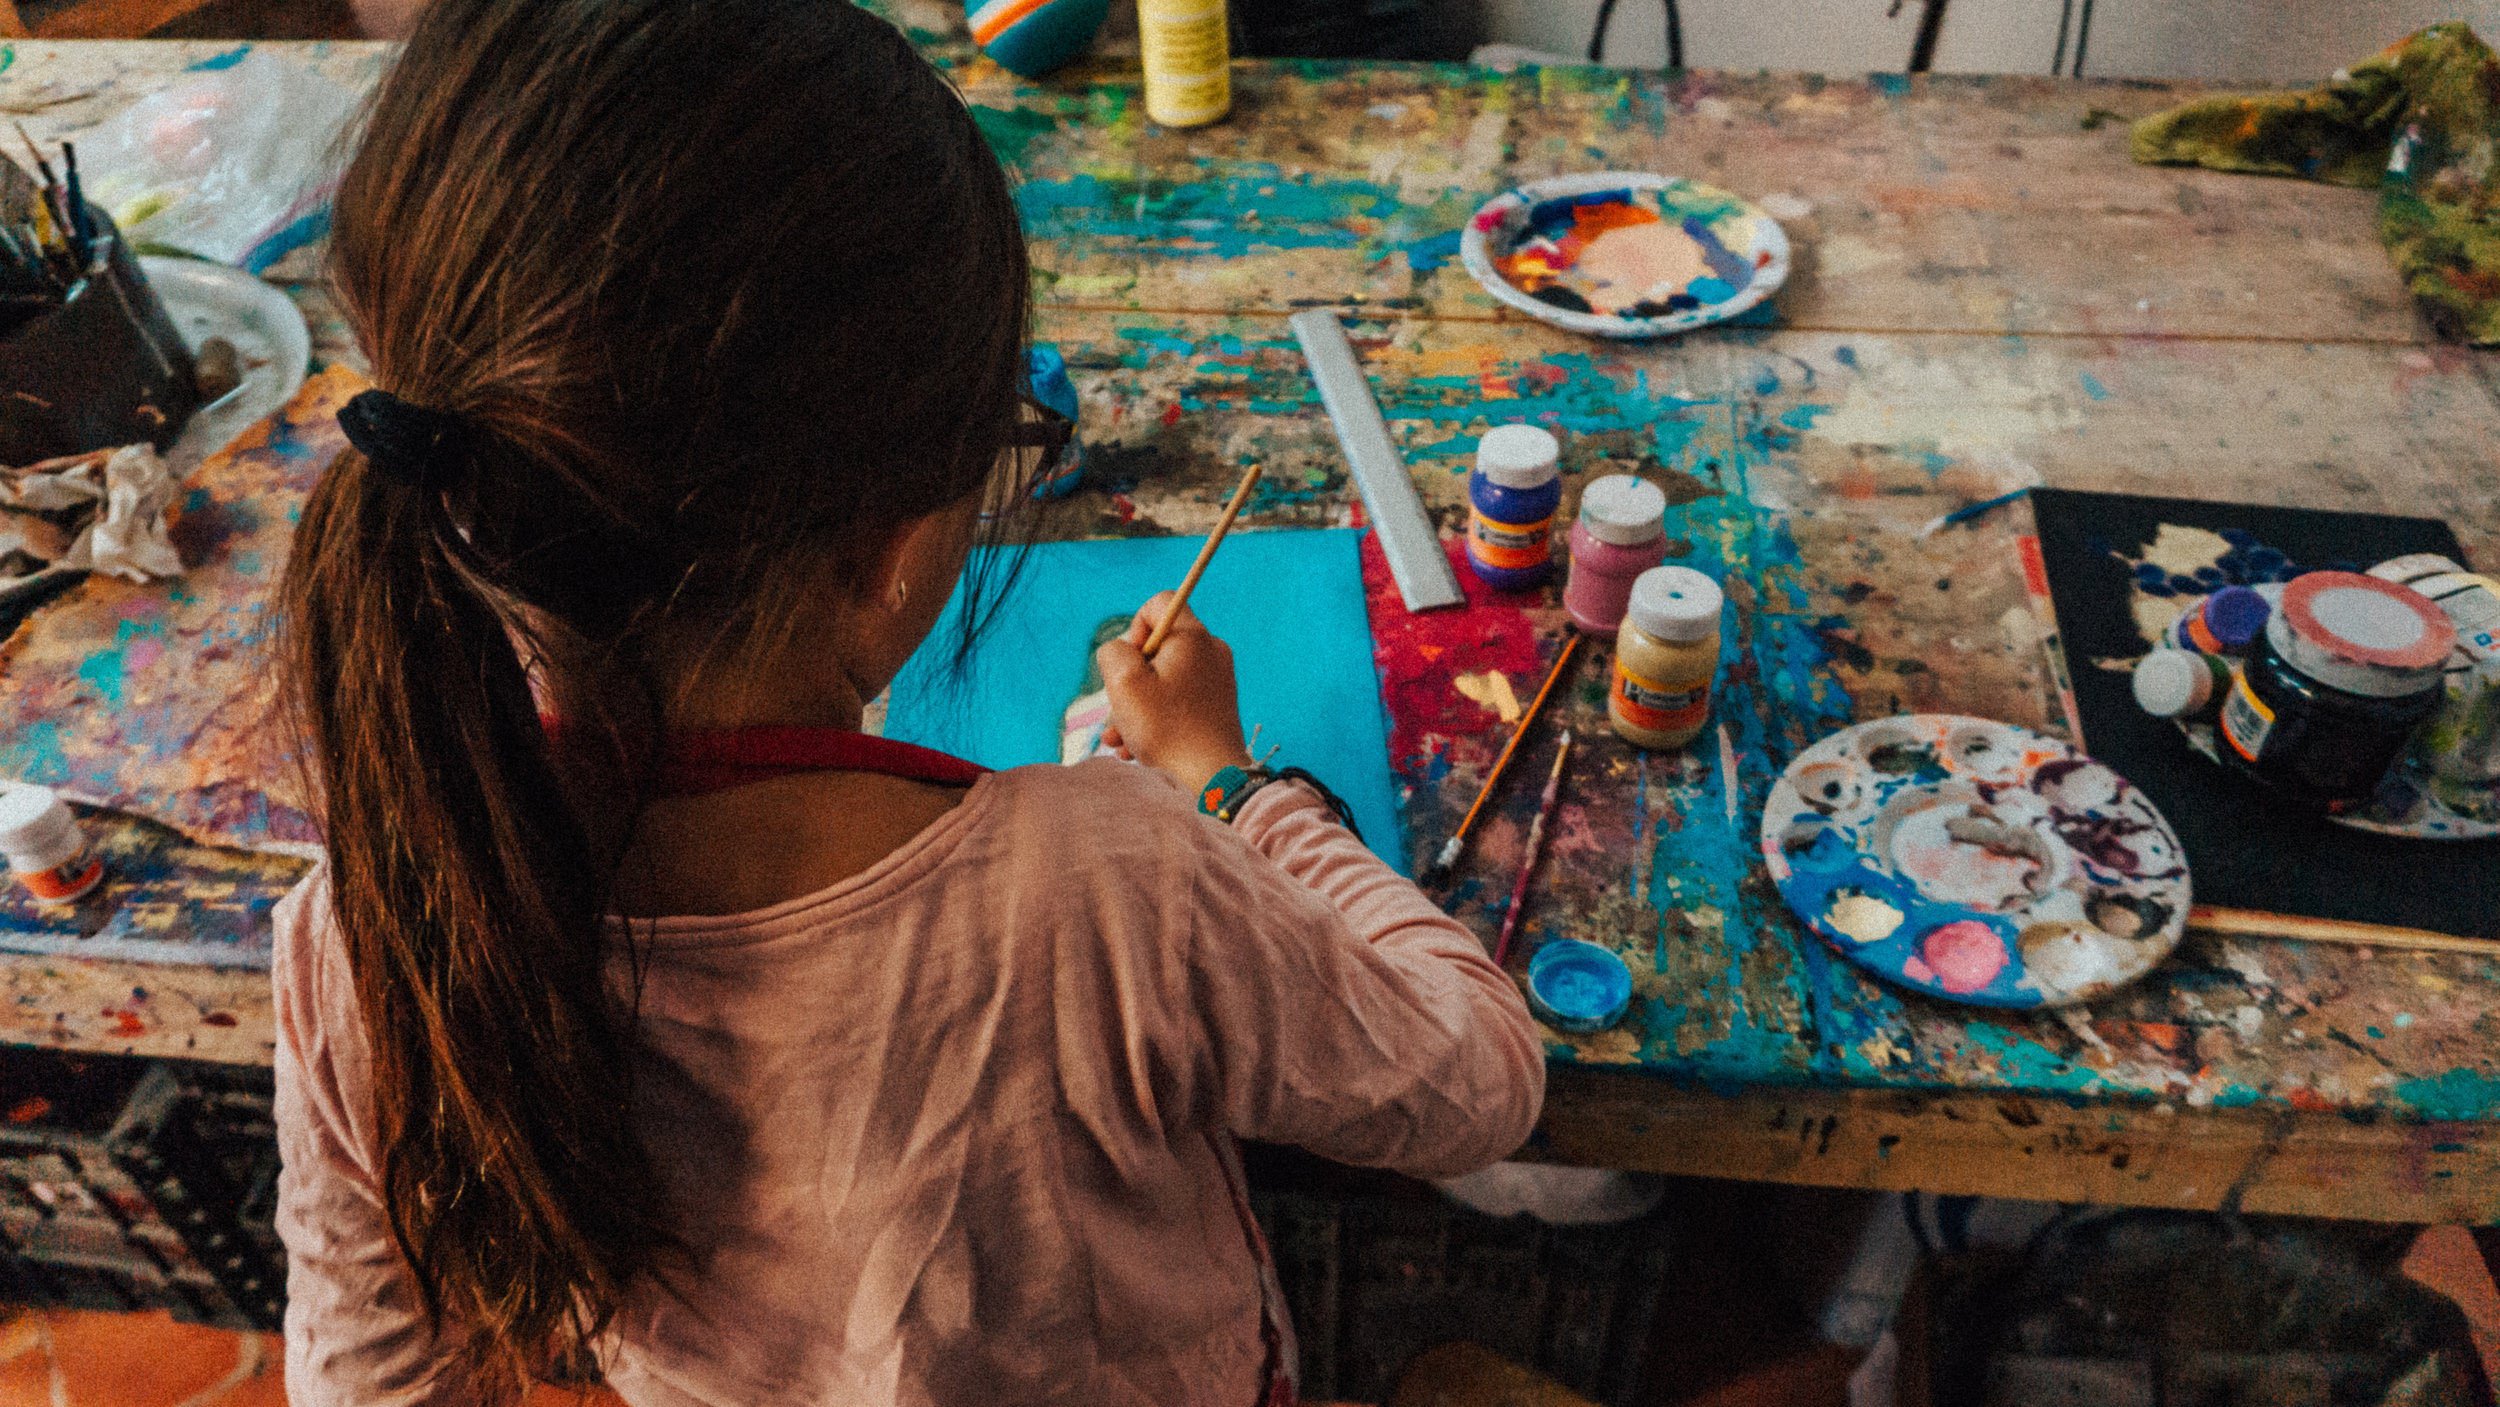 DONATION BASED ART THERAPY FOR KIDS -